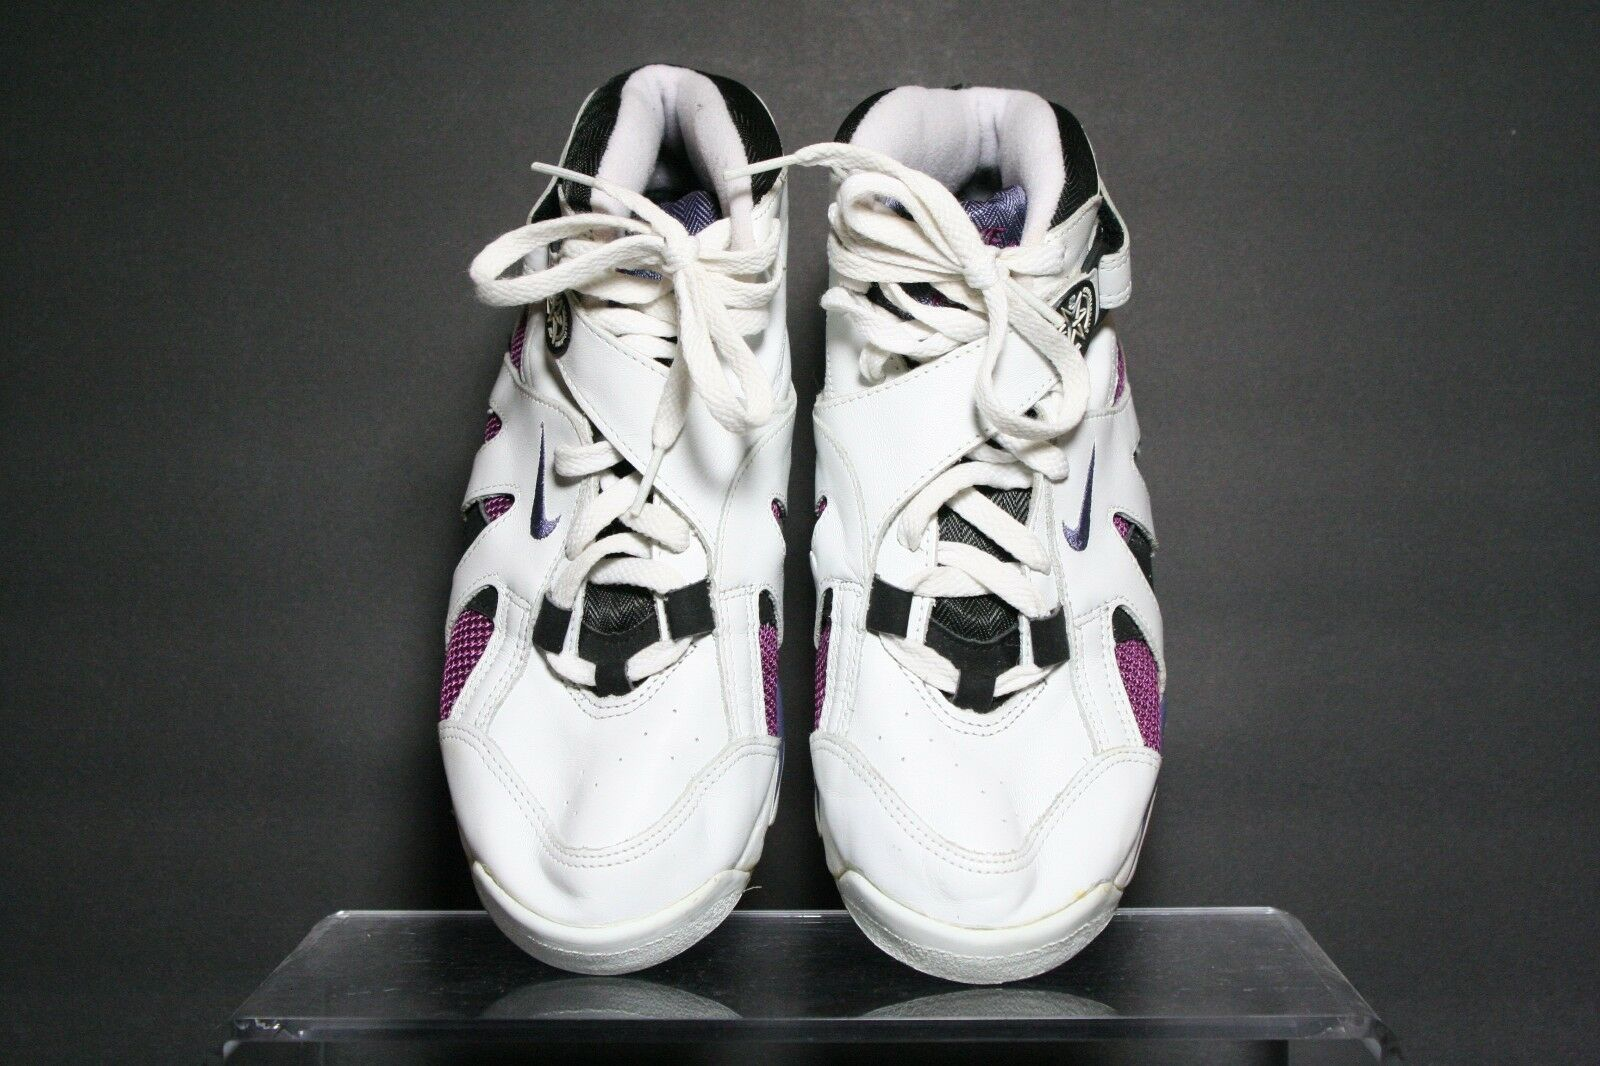 Nike Air Total Body 2010 II 94' OG OG OG Sneakers Athletic Hipster Multi Women's 9 f46b5d